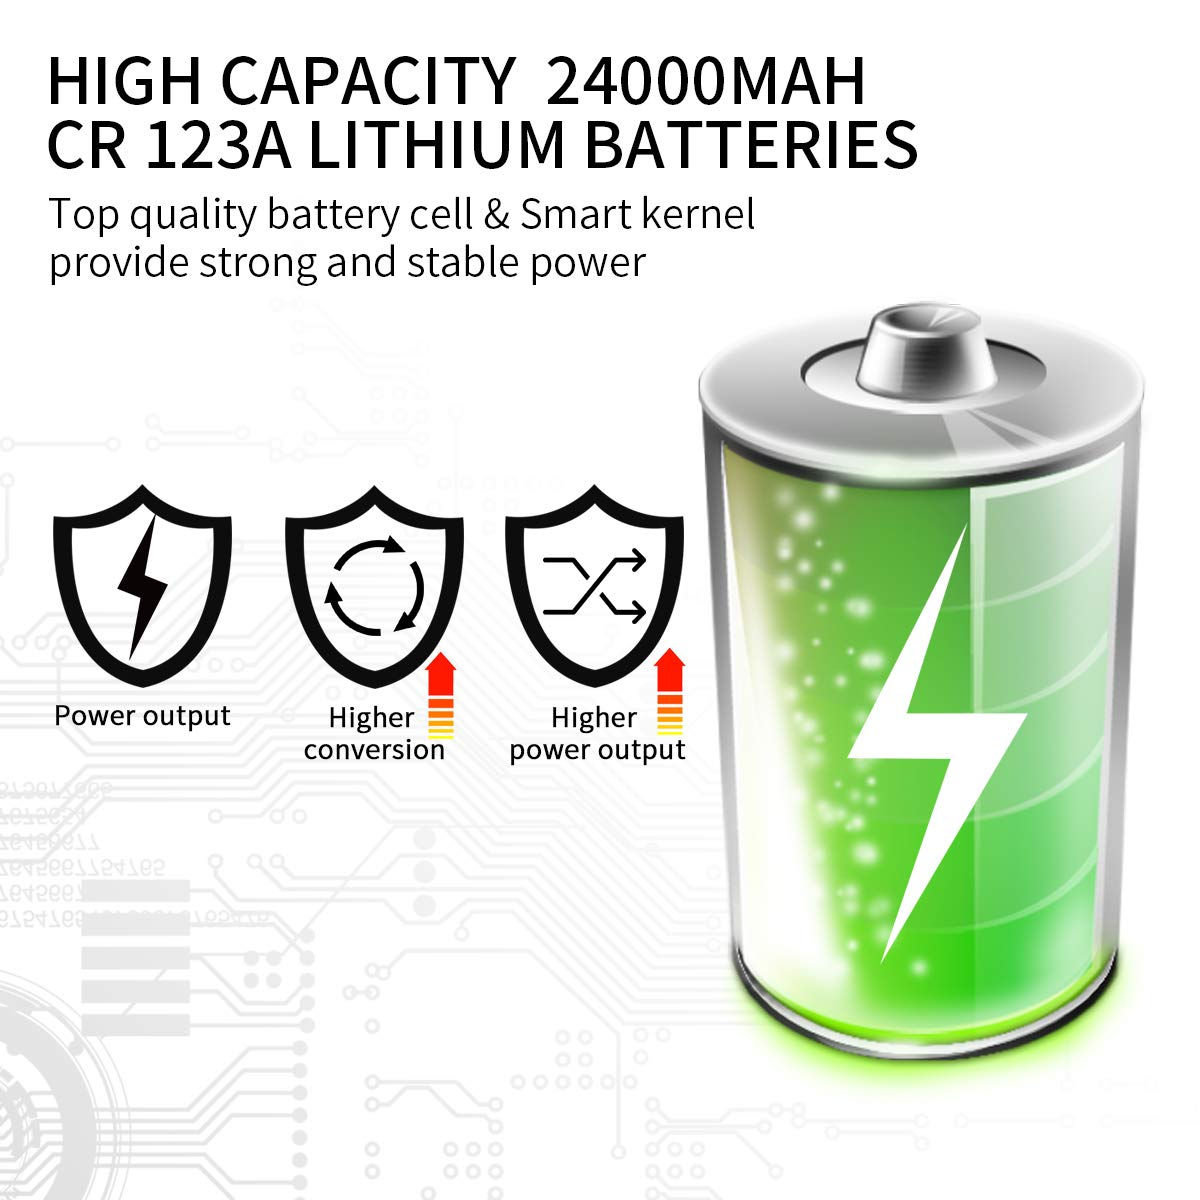 CR123A 3V Lithium Batteries 16 Pack, High Capacity 1500mAh Non-Rechargeable CR123A Battery PTC Protected for Flashlight, Camera, Toys, Alarm System (Not Compatible with Arlo Cameras)